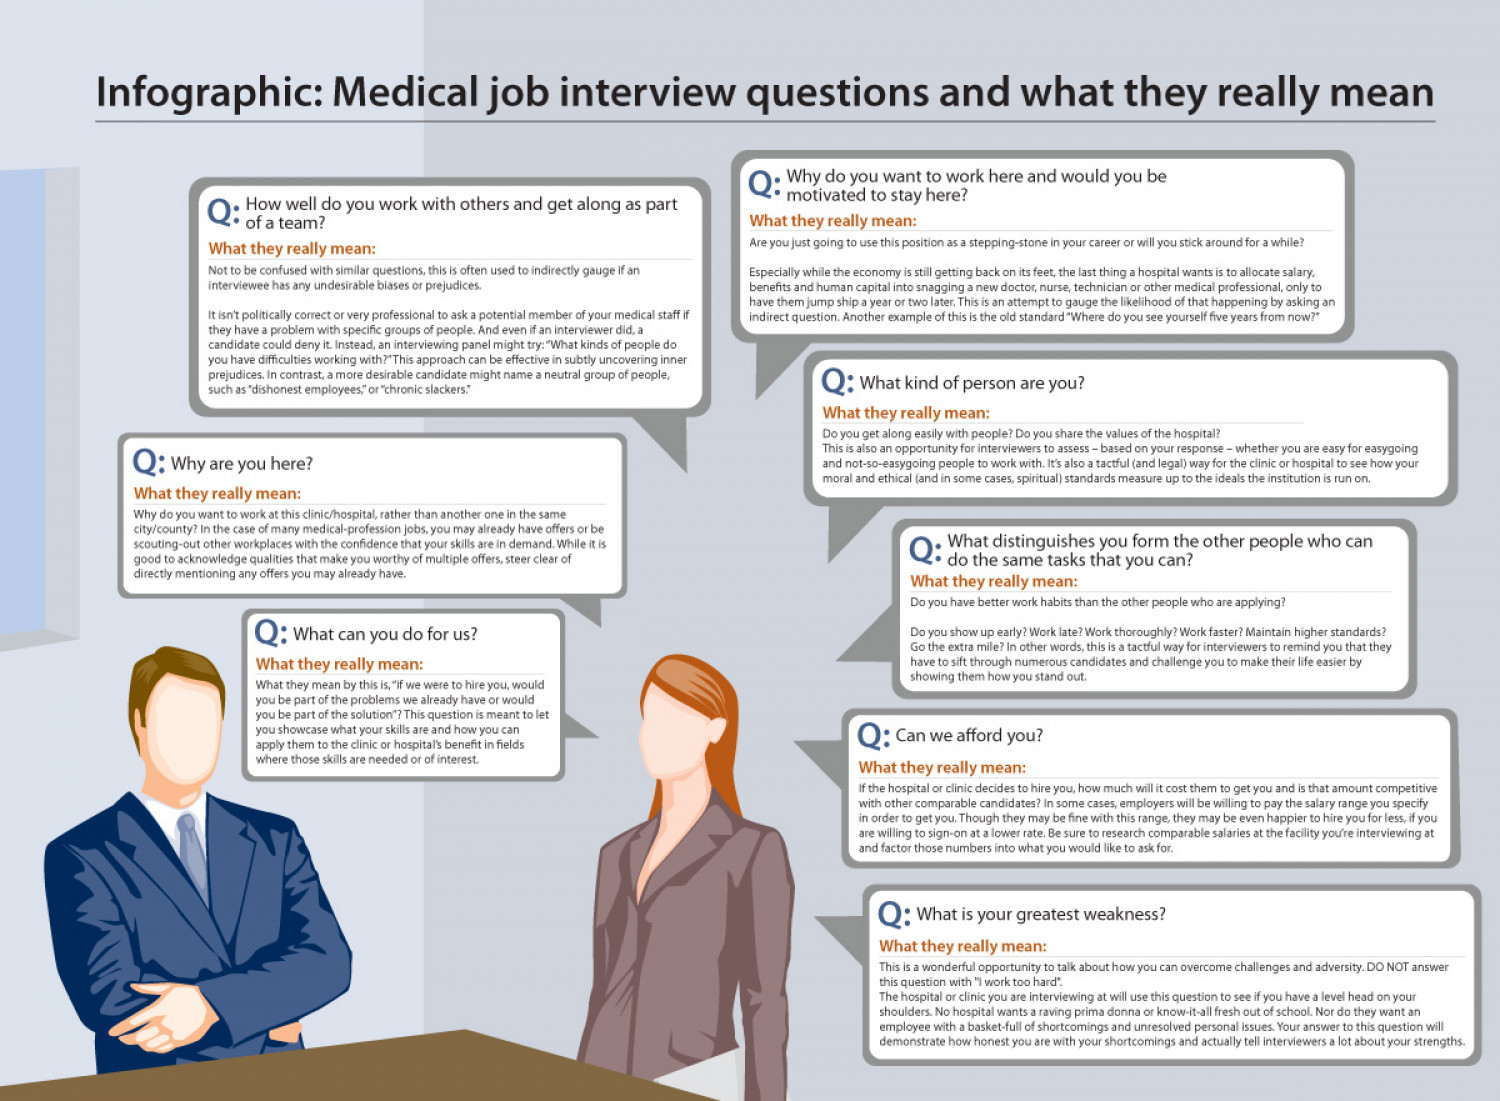 medical job interview questions and what they really mean ly medical job interview questions and what they really mean infographic